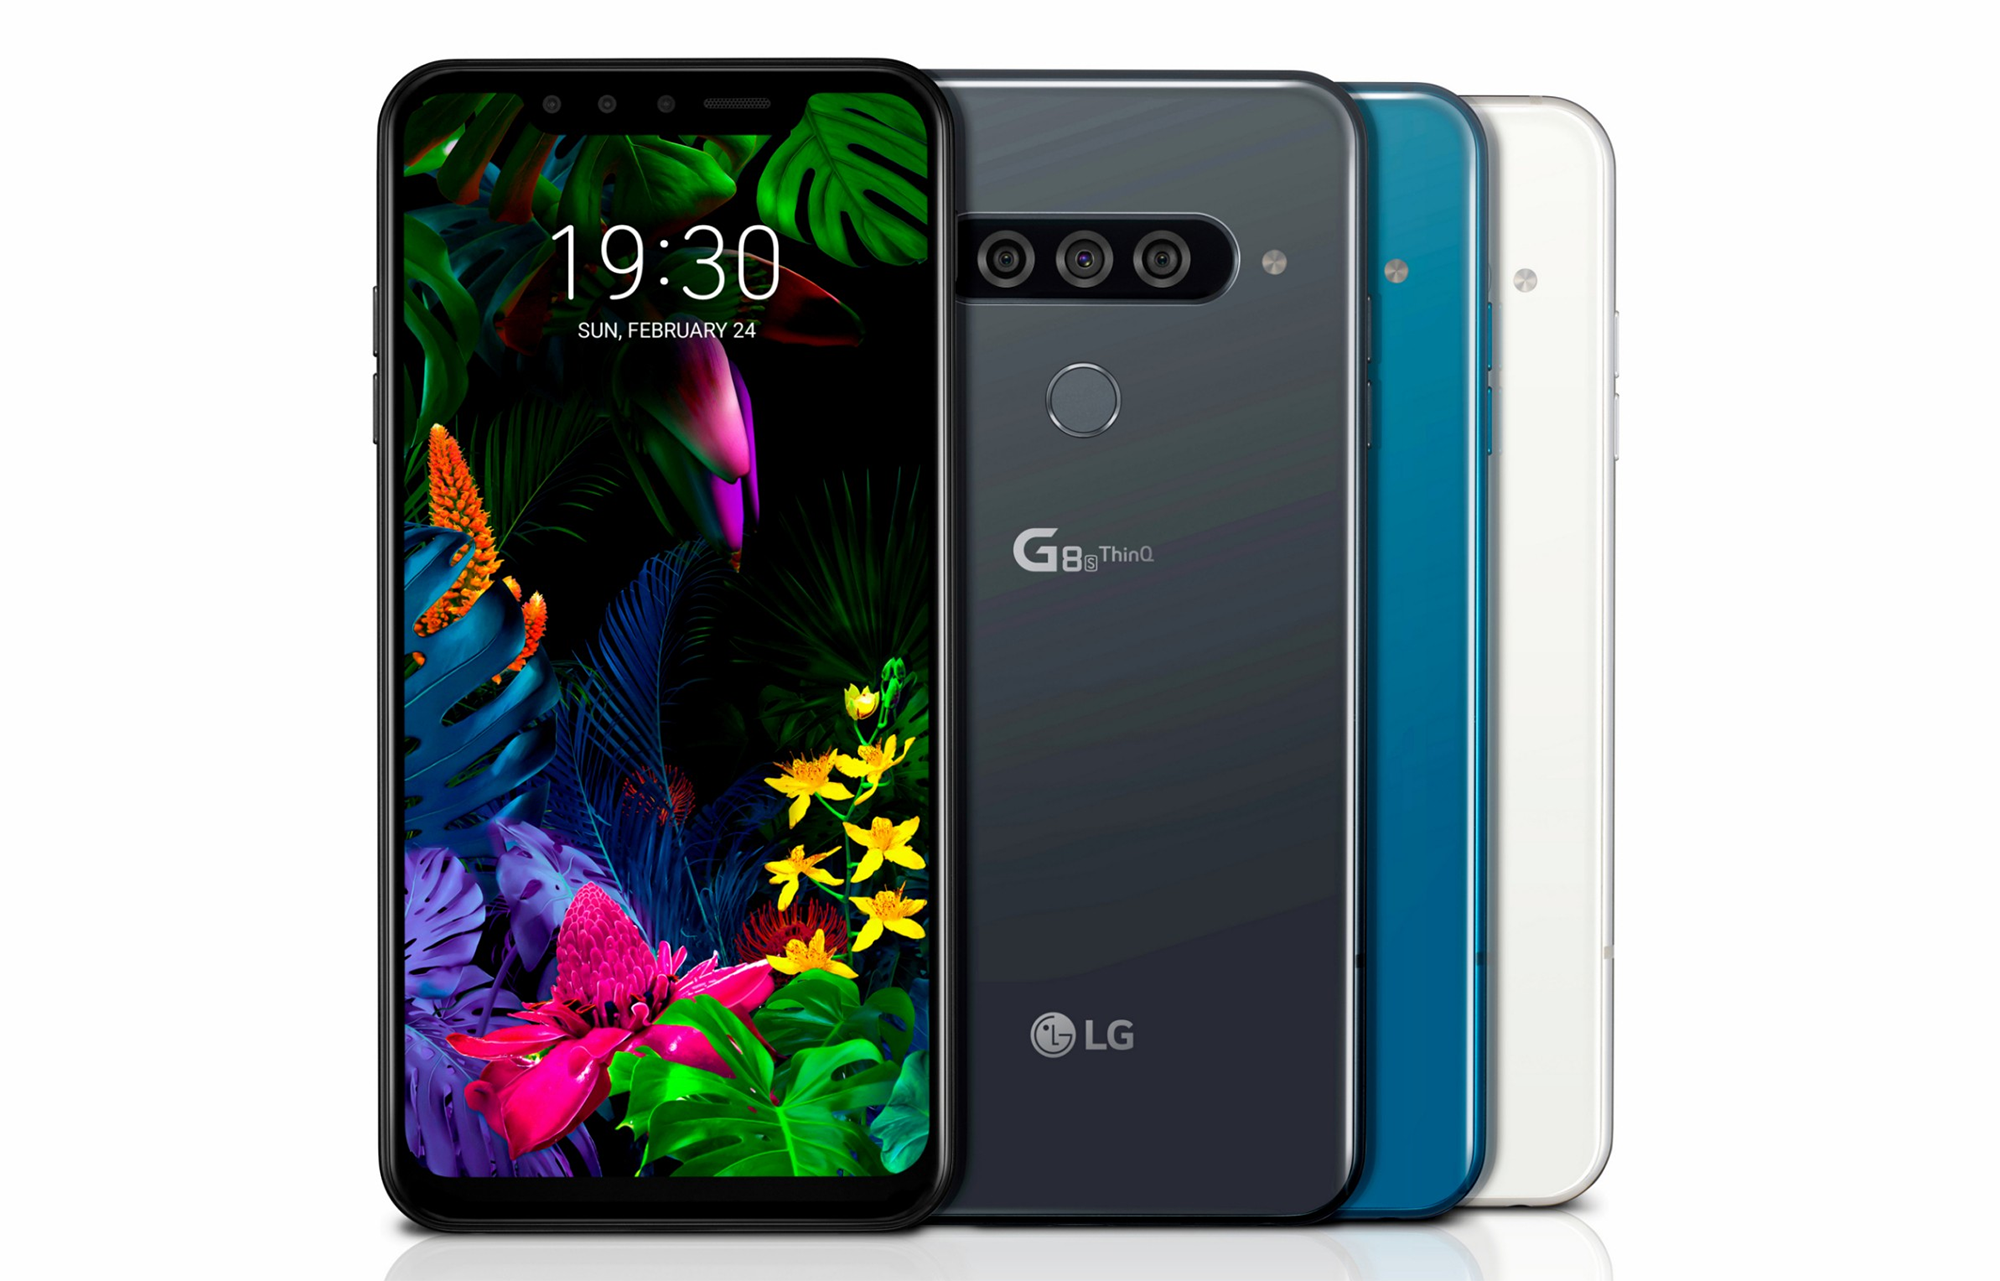 The G8s will be a cheaper version of the G8, with triple rear cameras.